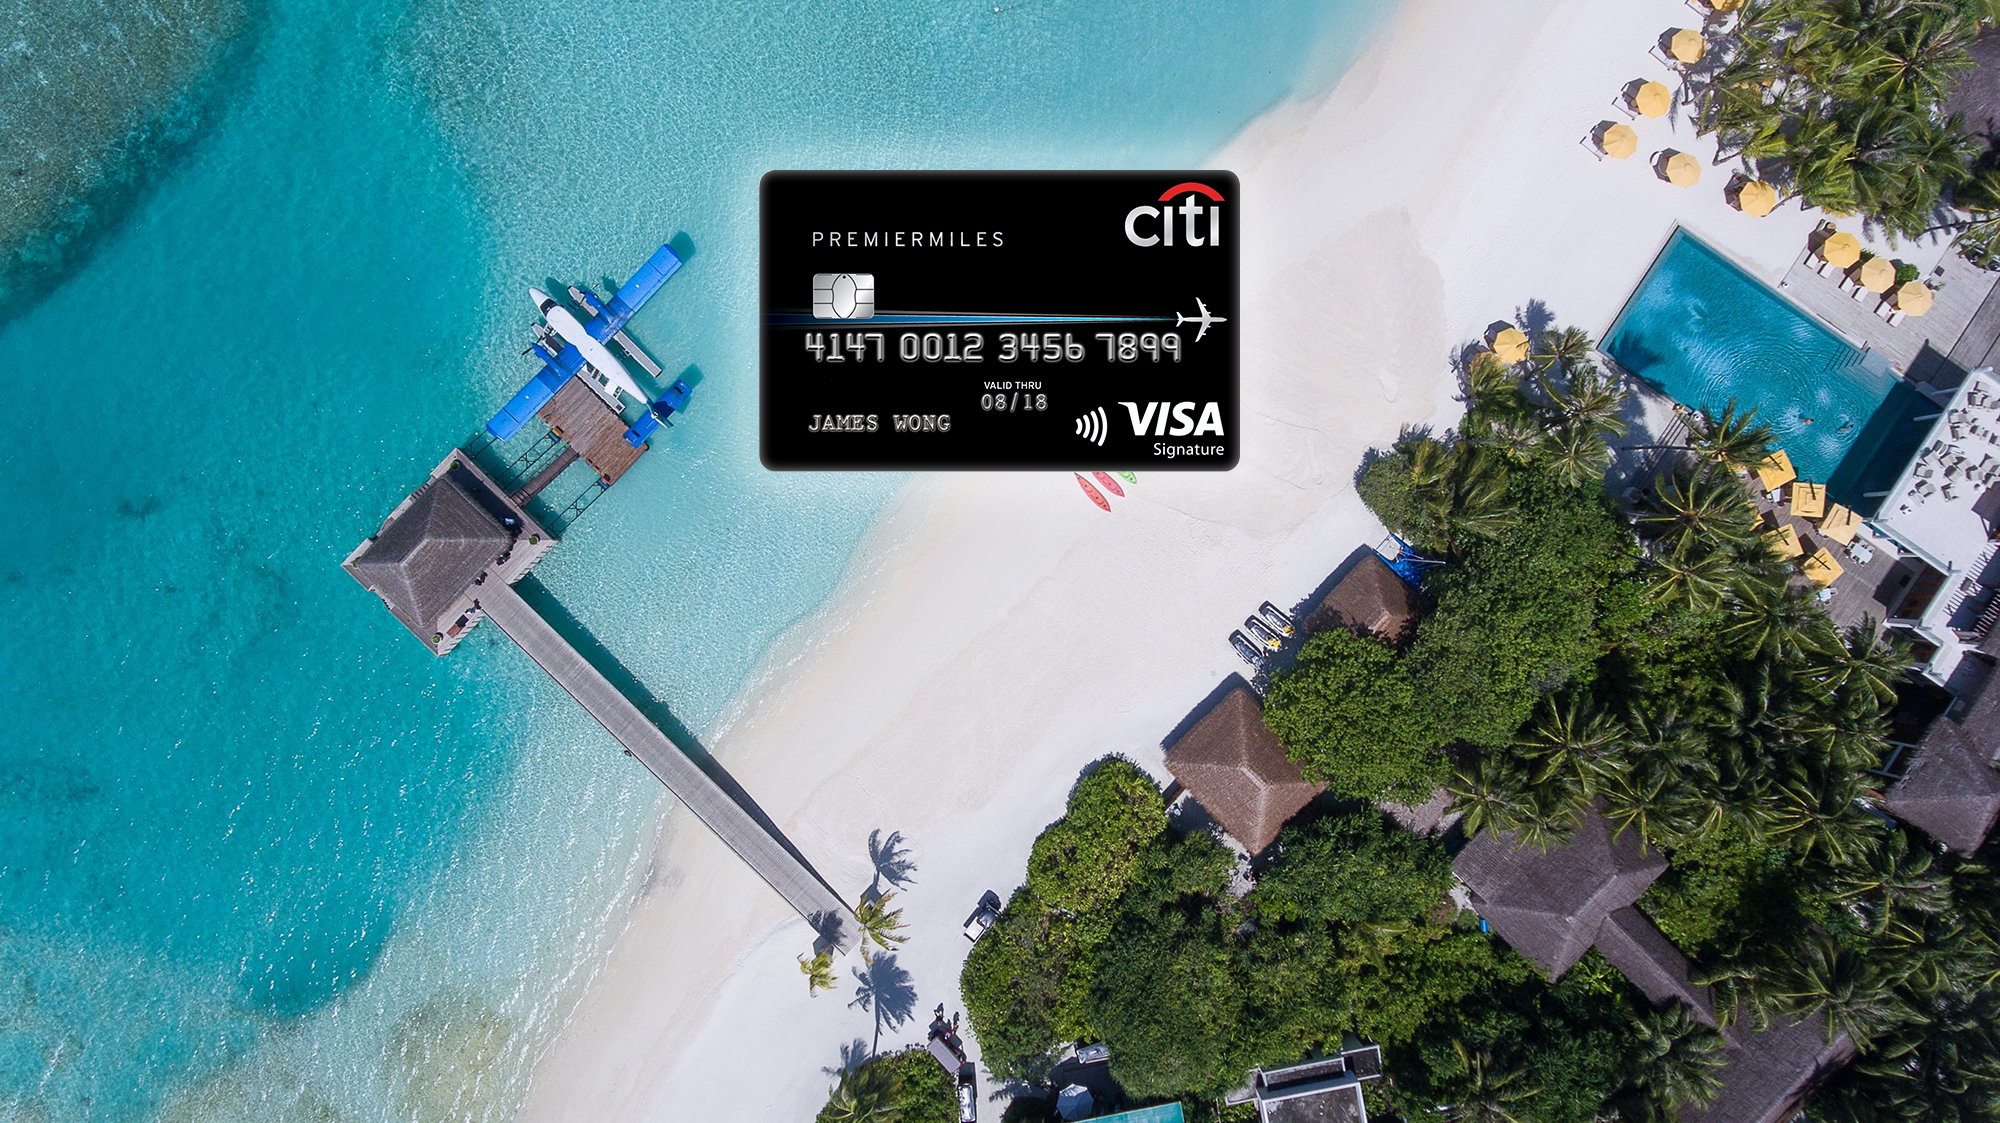 Citi's 21,000 miles sign-up bonus for the PremierMiles Visa extended to January 2019